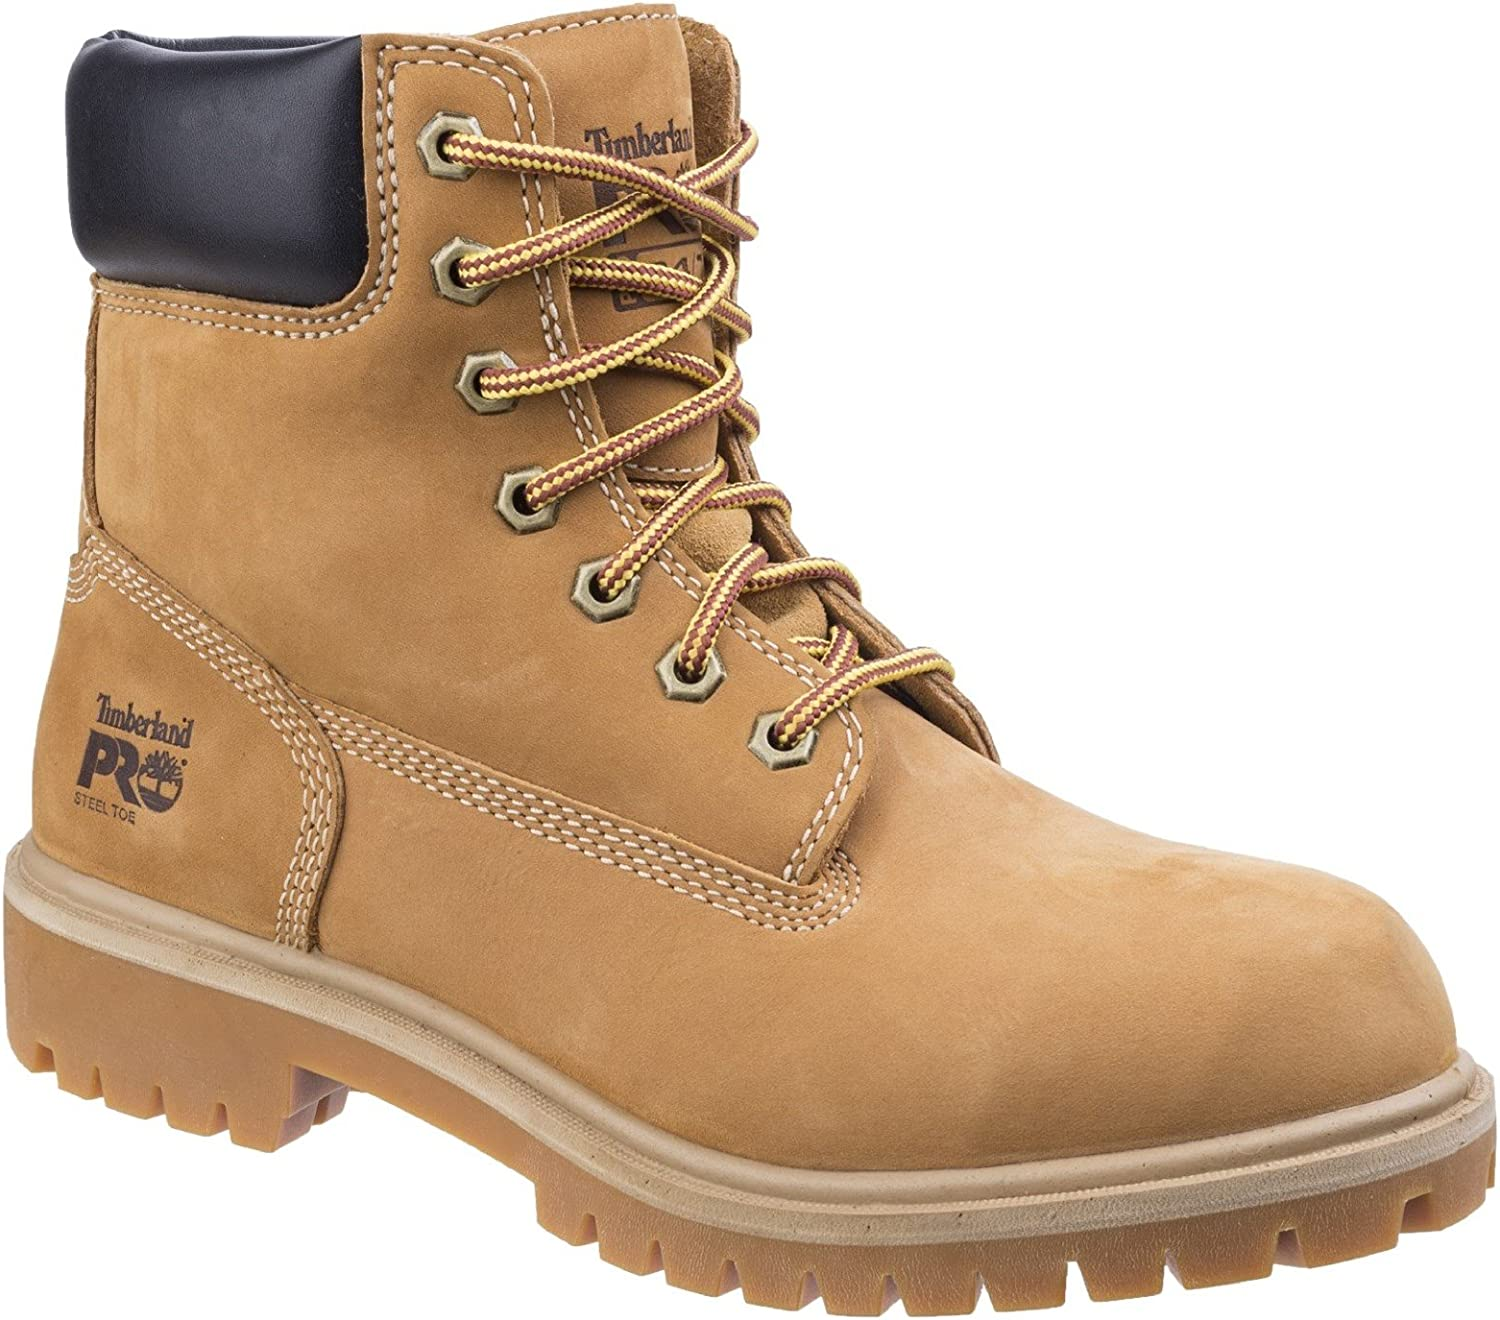 Timberland Pro Direct Attach, Men's